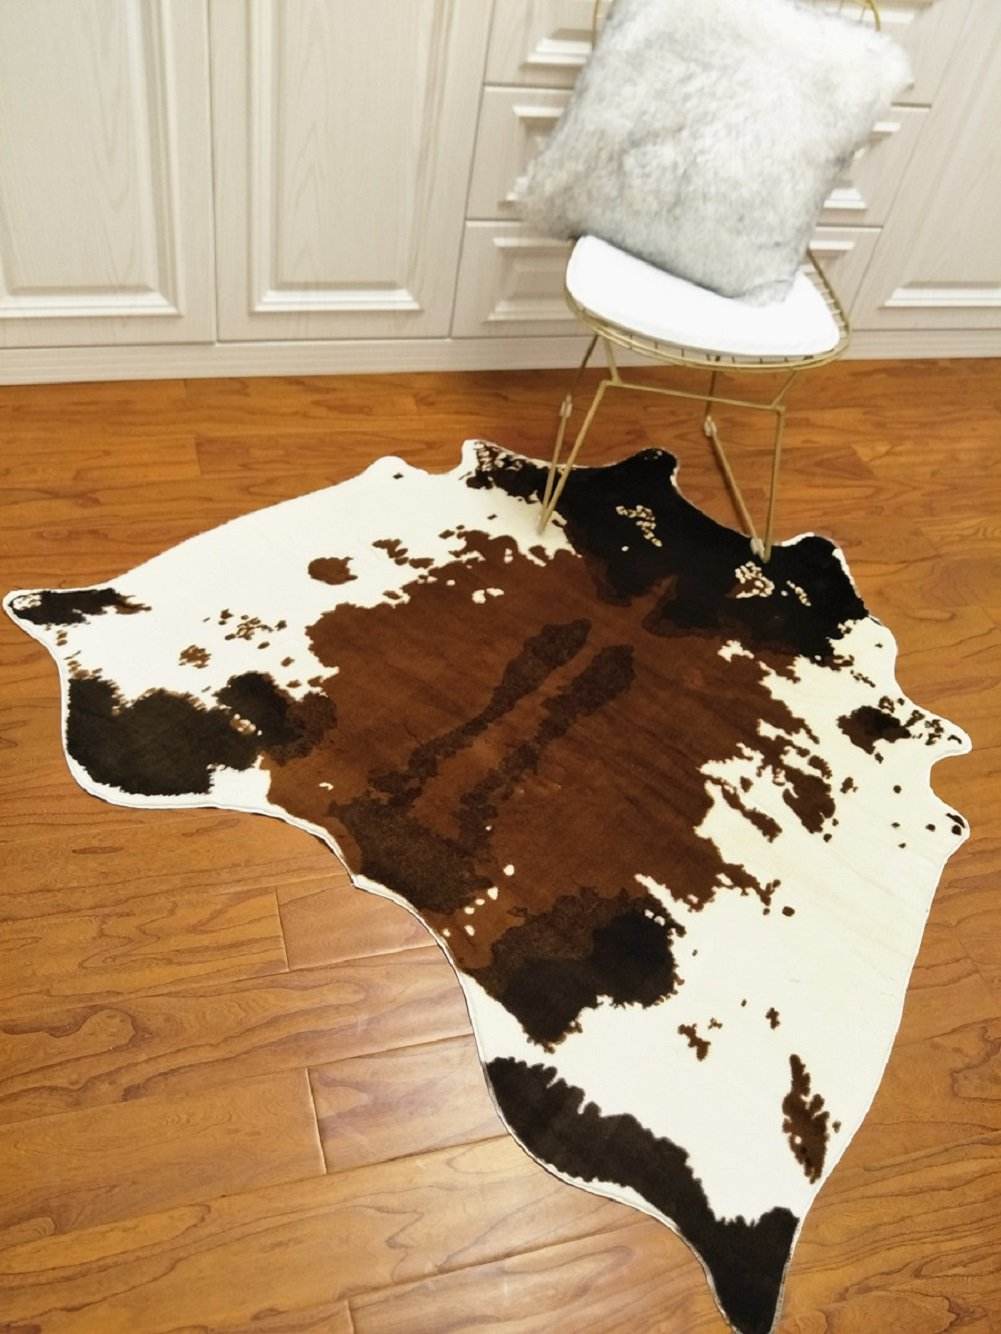 Cow Hide Skin Rug Cowhide Print Carpet Faux Leather Area Rug Slip-Resistant Mat 4.1x4.2 Feet